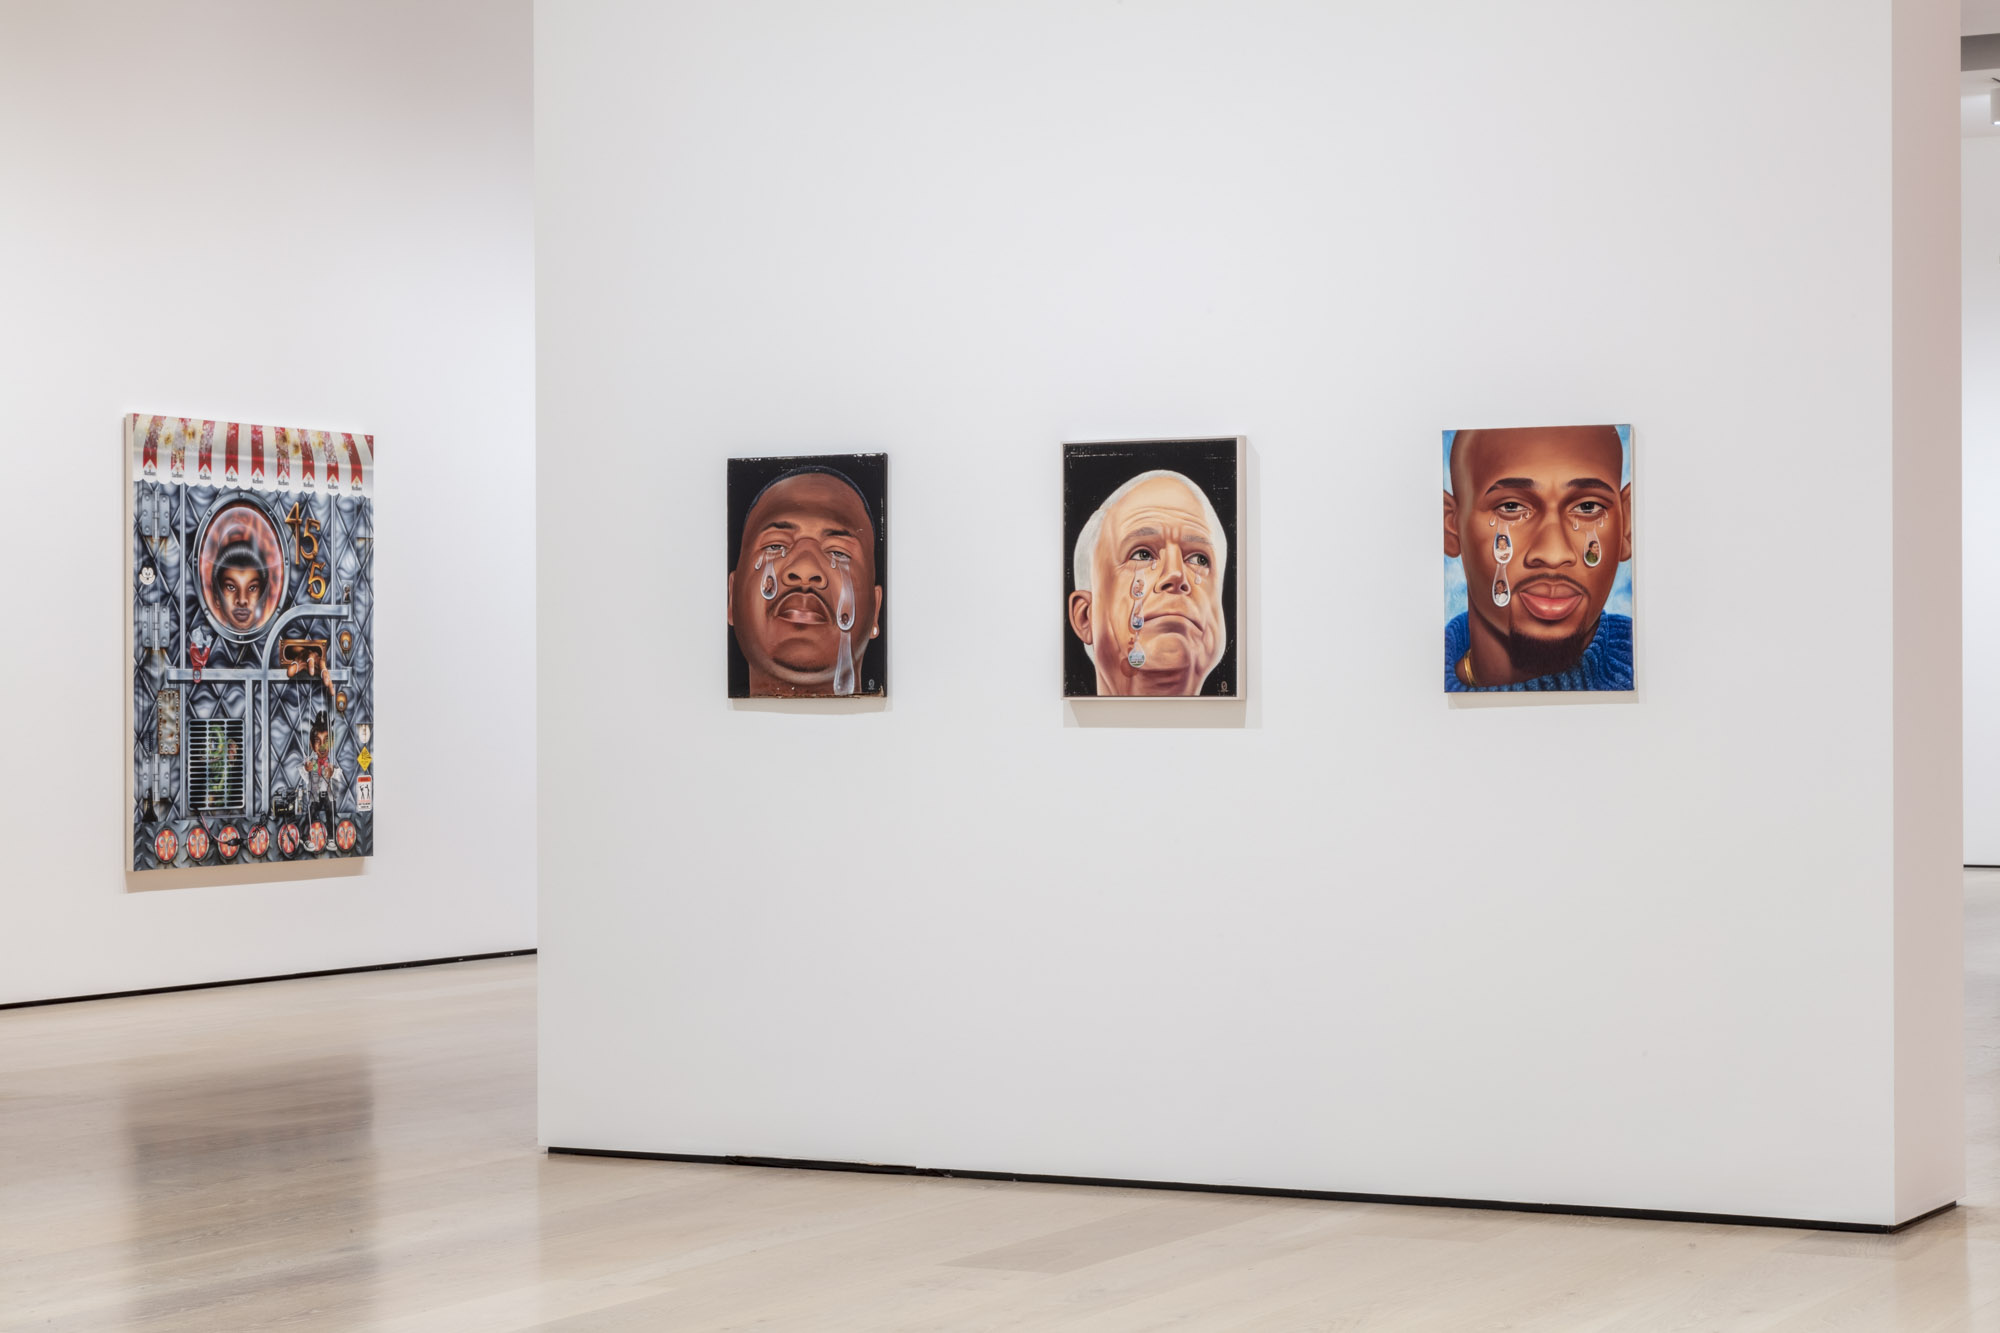 """An installation view of Fulton Leroy Washington's work at """"Made in L.A. 2020: a version."""" at Hammer Museum, Los Angeles. 